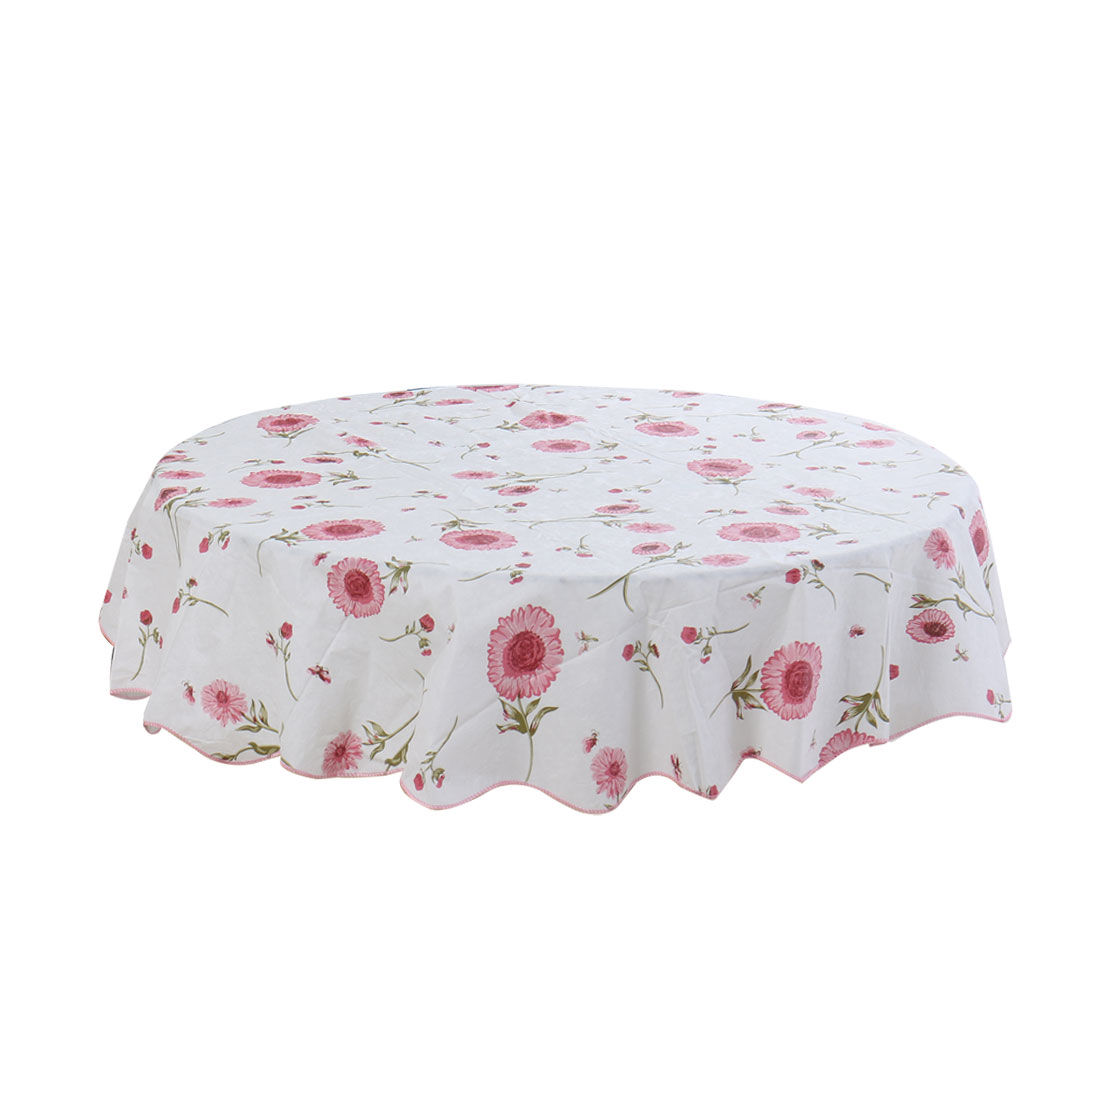 Home Picnic Round Sunflower Pattern Water Resistant Oil-proof Tablecloth Table Cloth Cover Pink 60 Inch